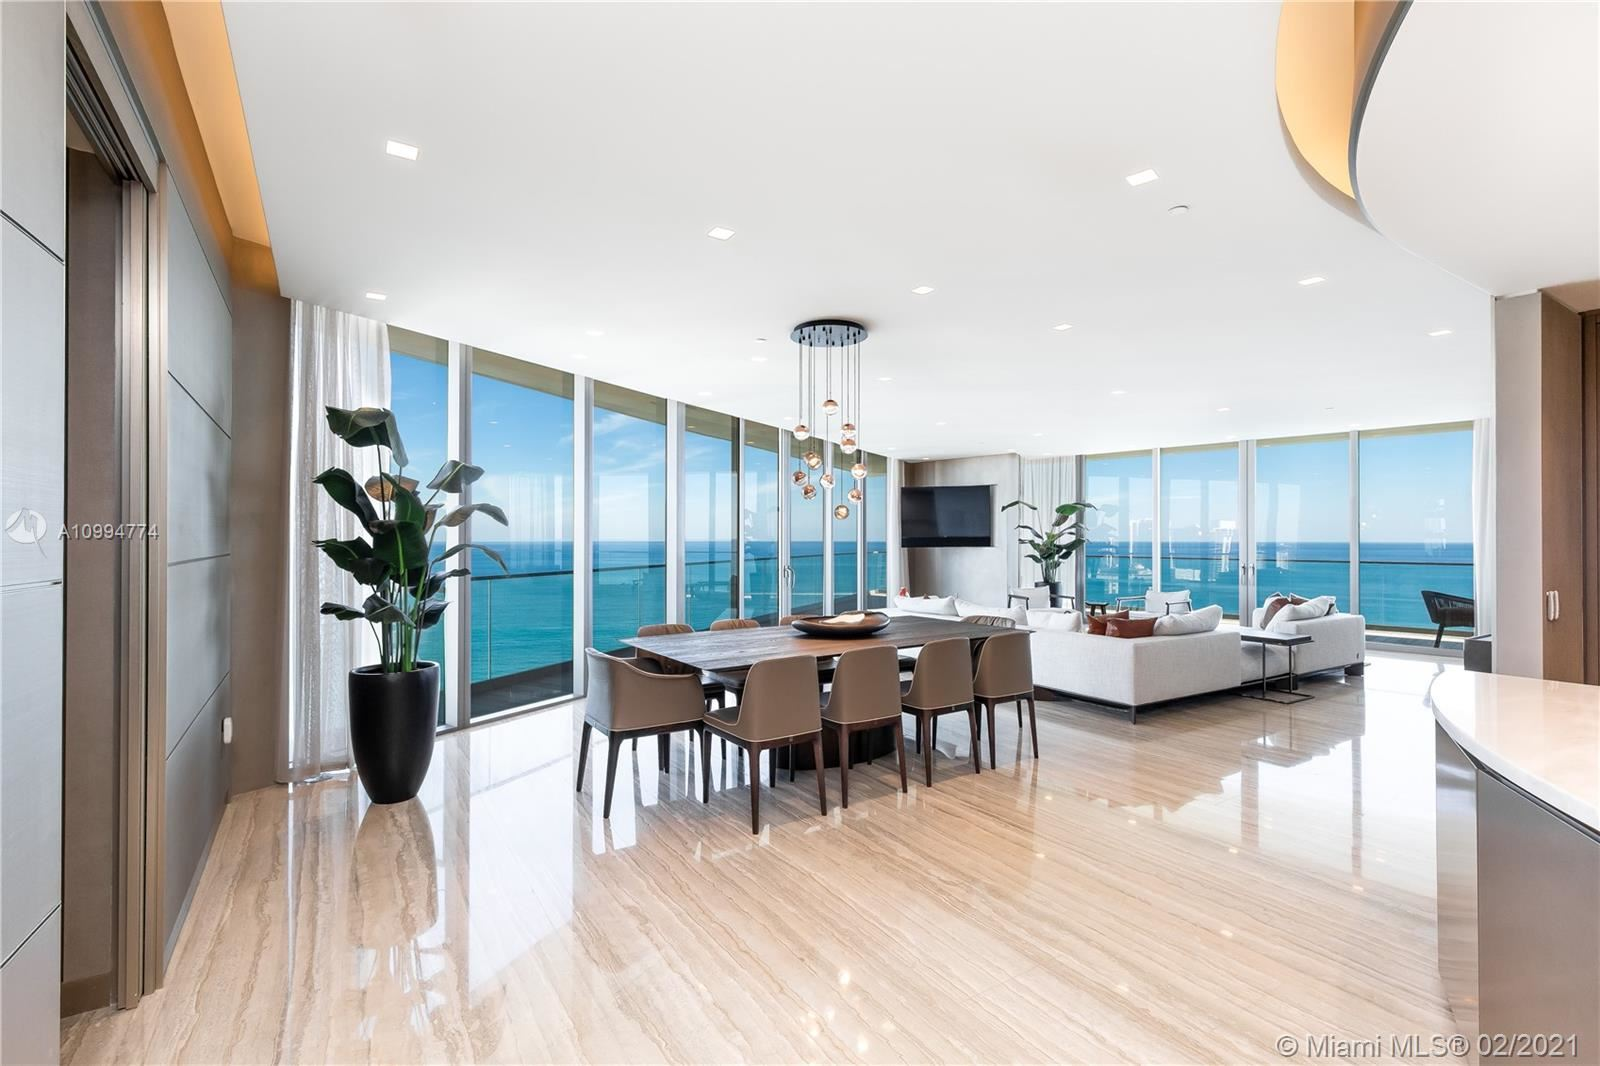 18975 Collins Ave #1900 ARMANI CERTIFIE, Sunny Isles, FL 33160 - #: A10994774